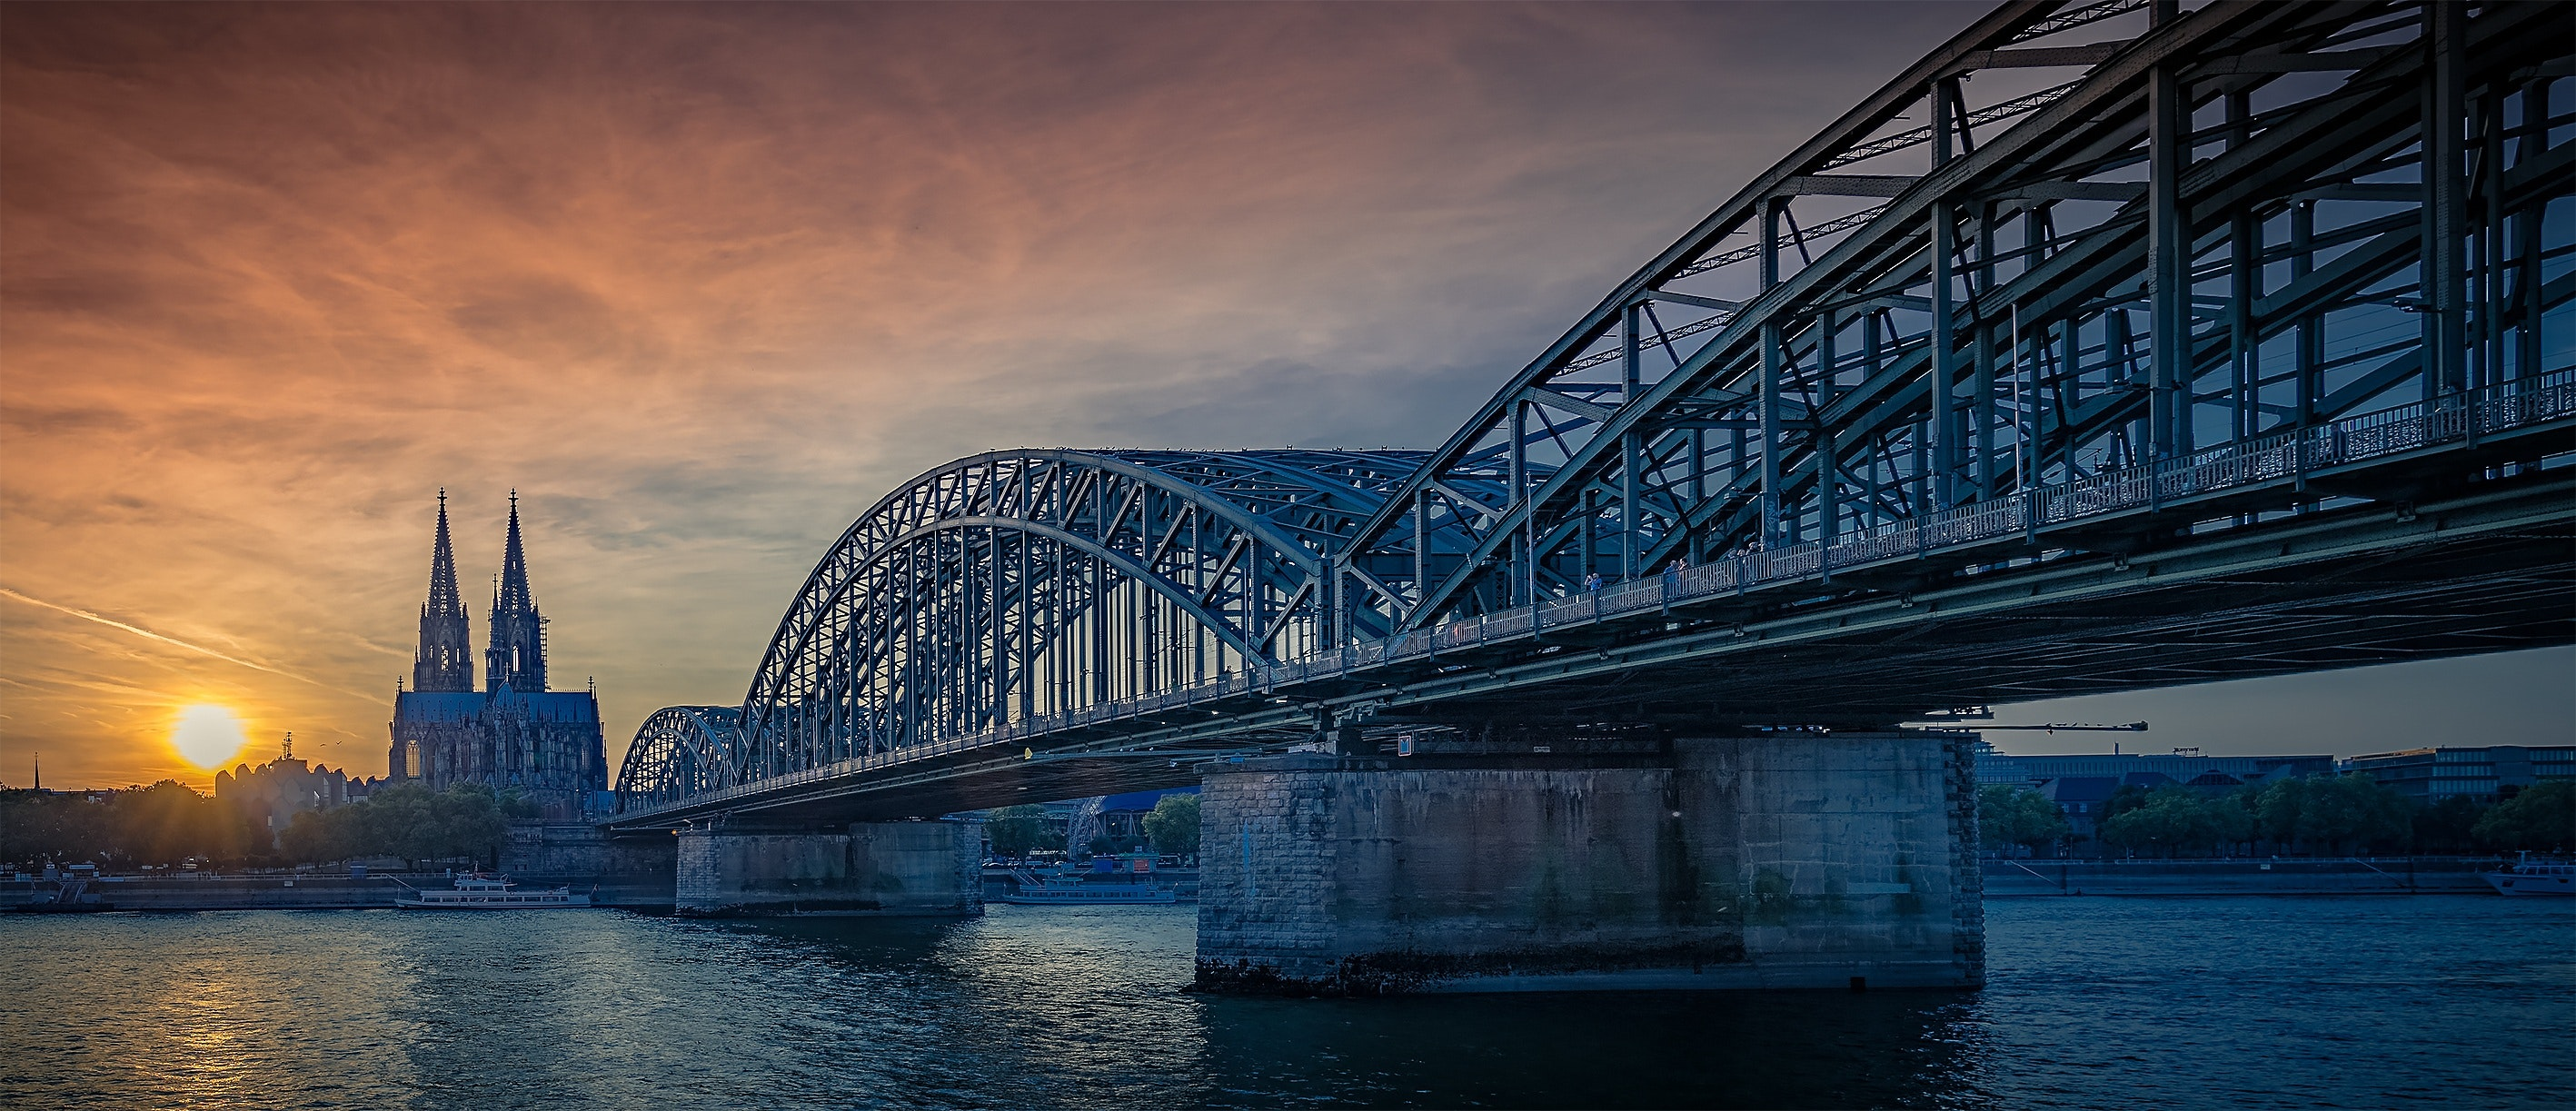 grey concrete bridge on body of water under blue and white sky during daytime  u00b7 free stock photo